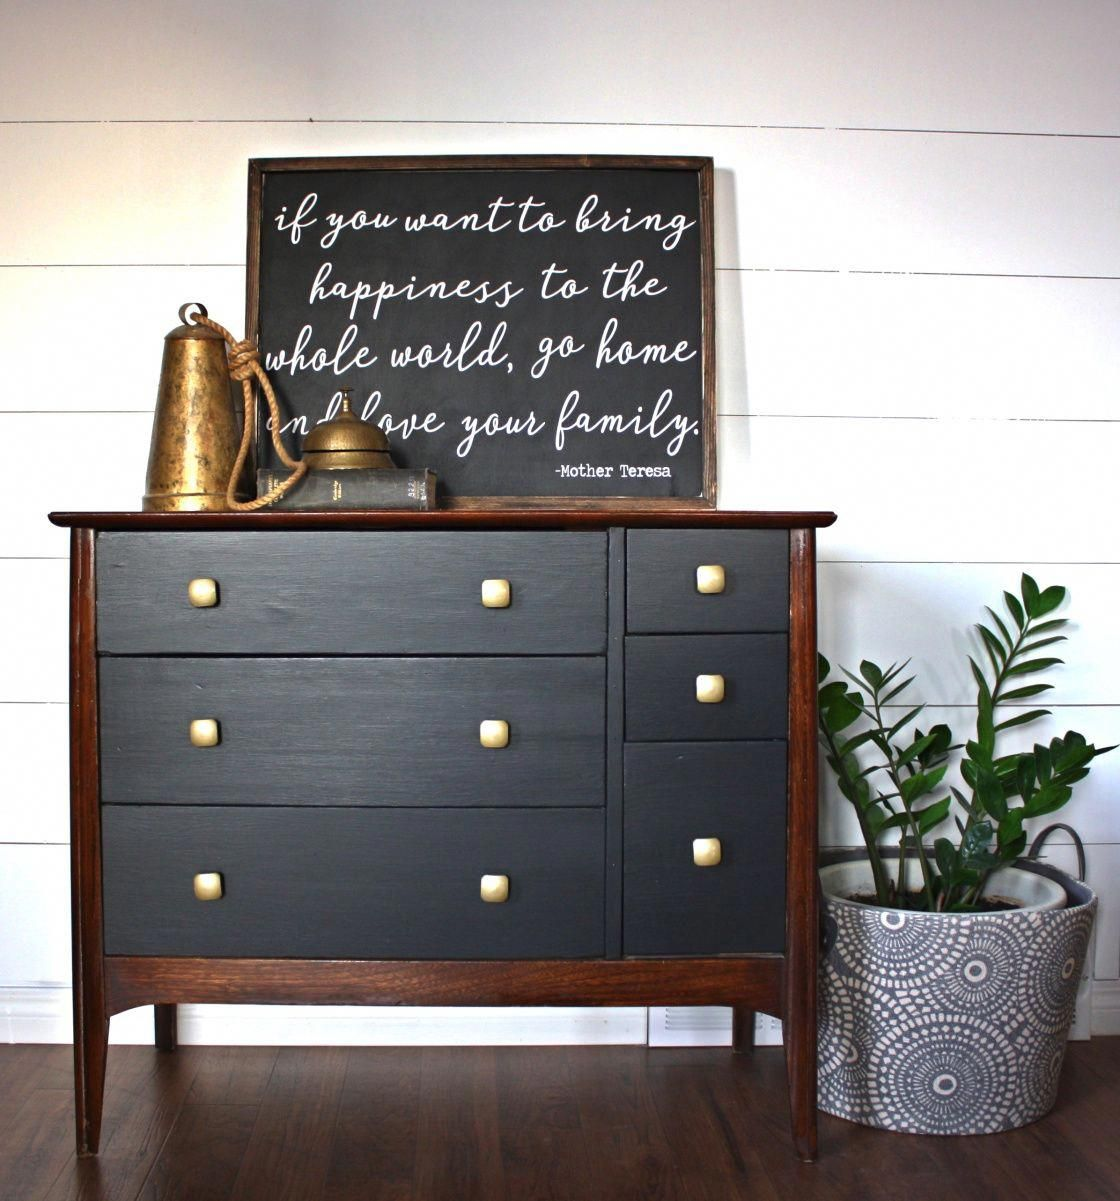 Cait from little city farmhouse used liquorice and clear